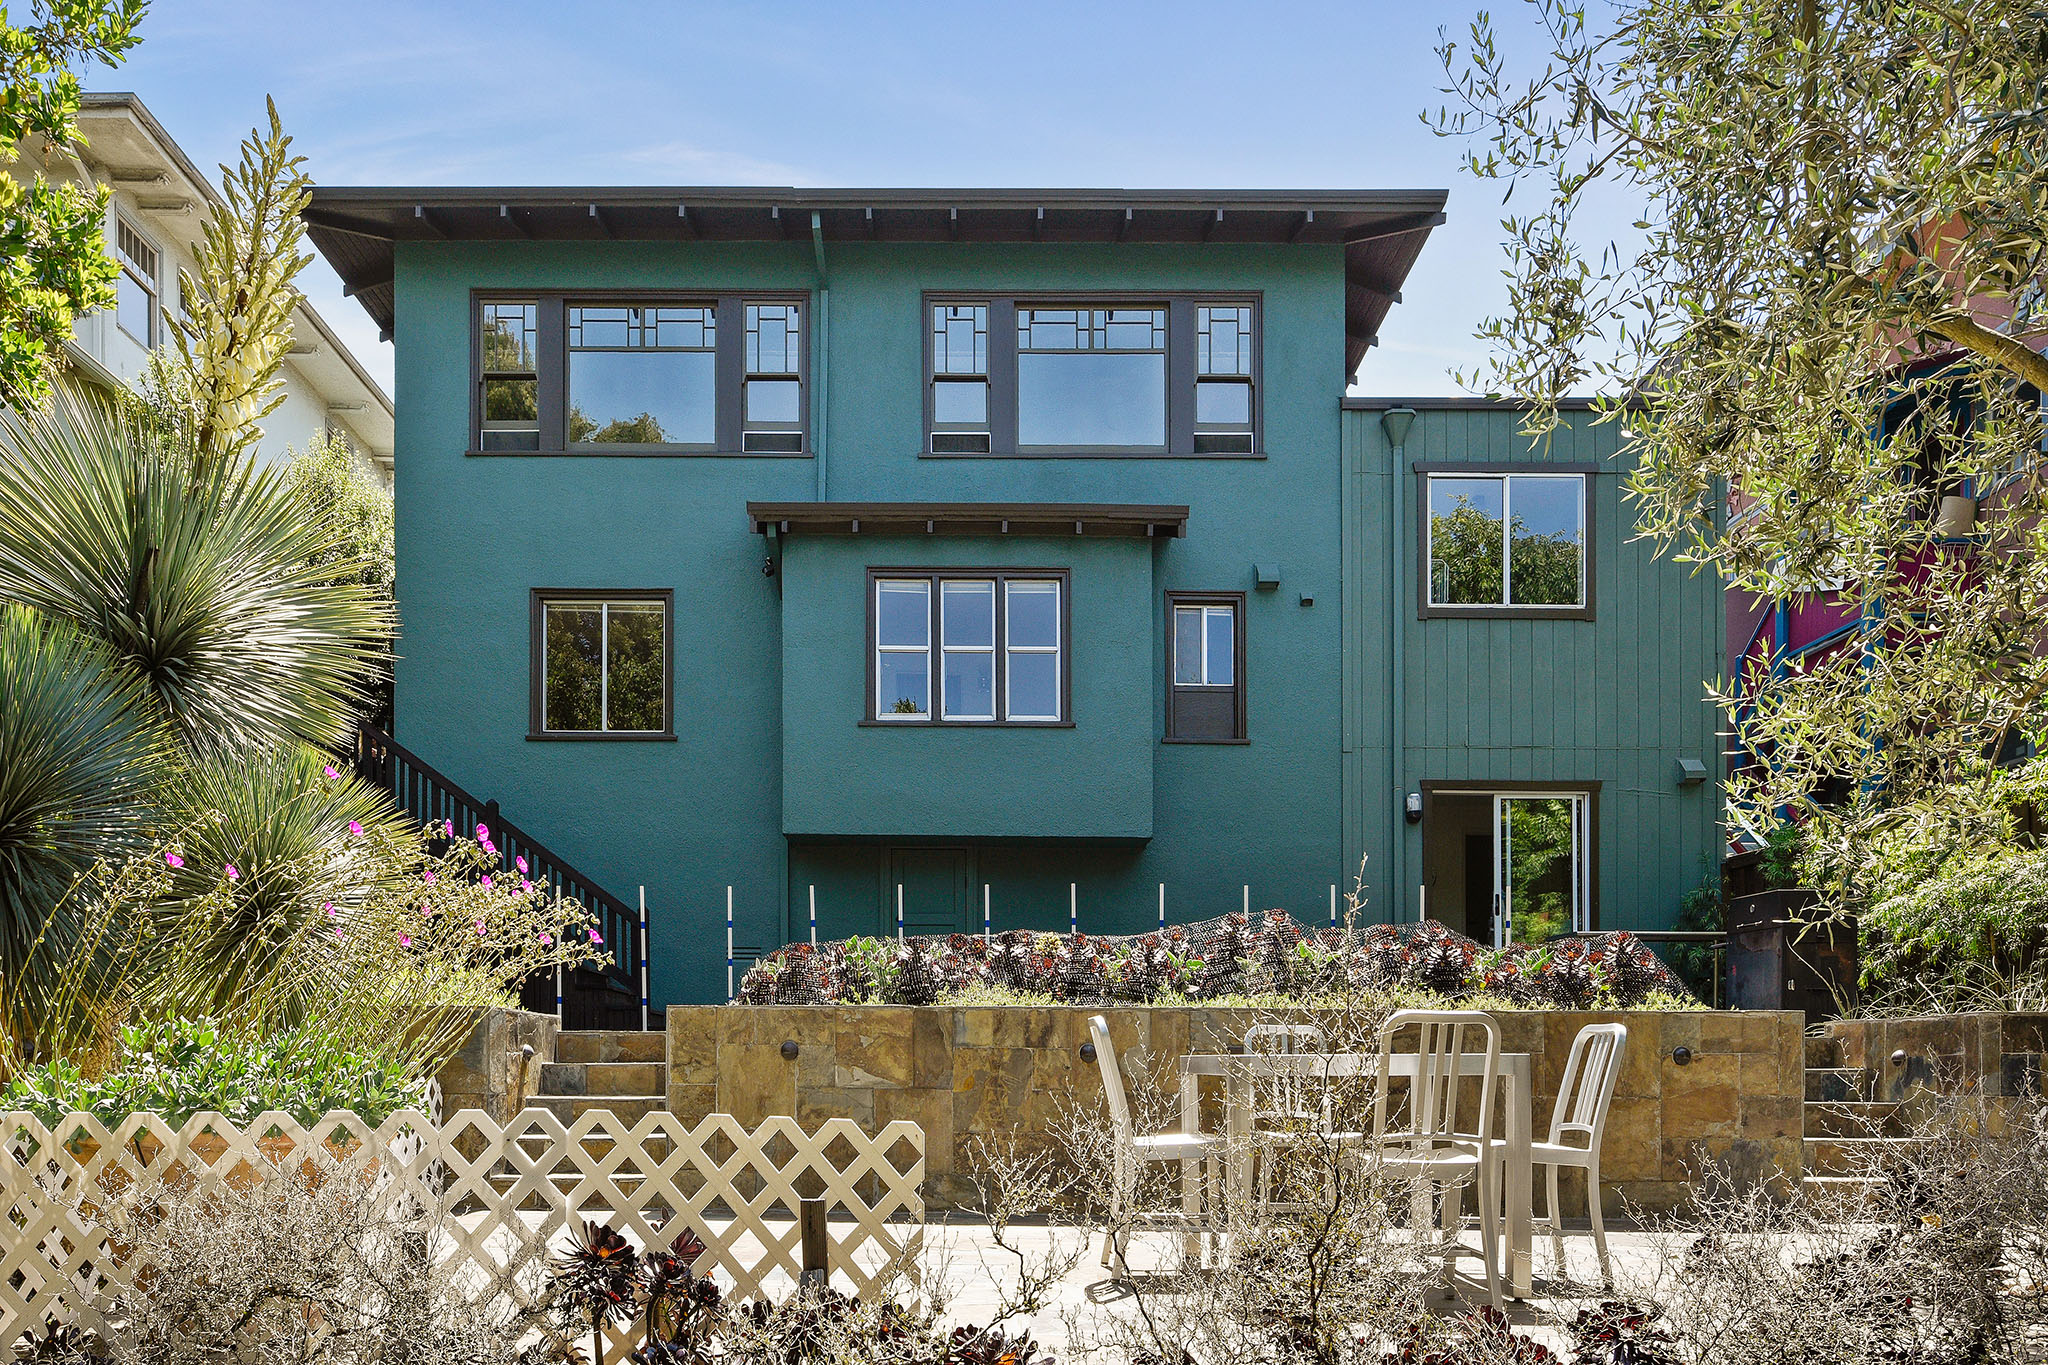 SOLD | 859 WALKER AVENUE, OAKLAND $1,450,000